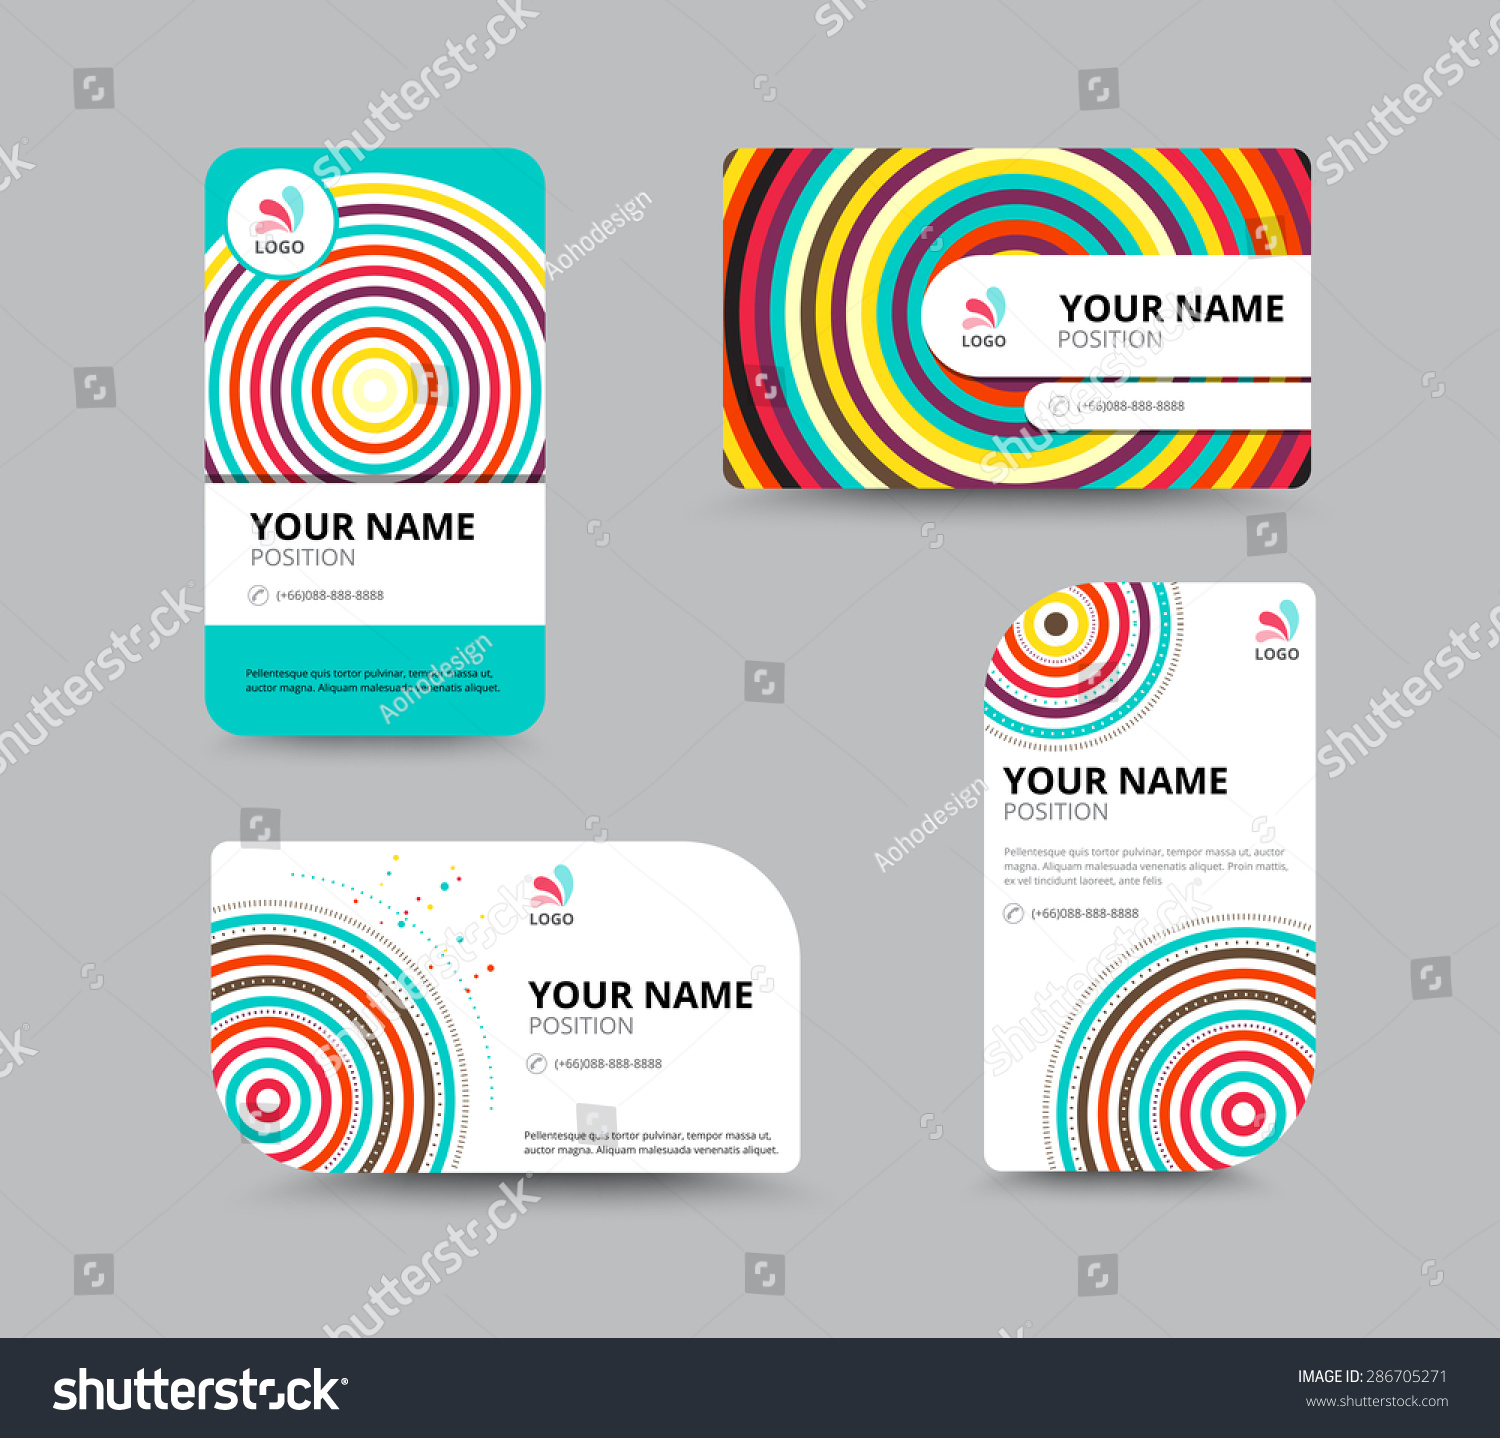 Business Card Design Template Circle Concept Stock Vector (2018 ...